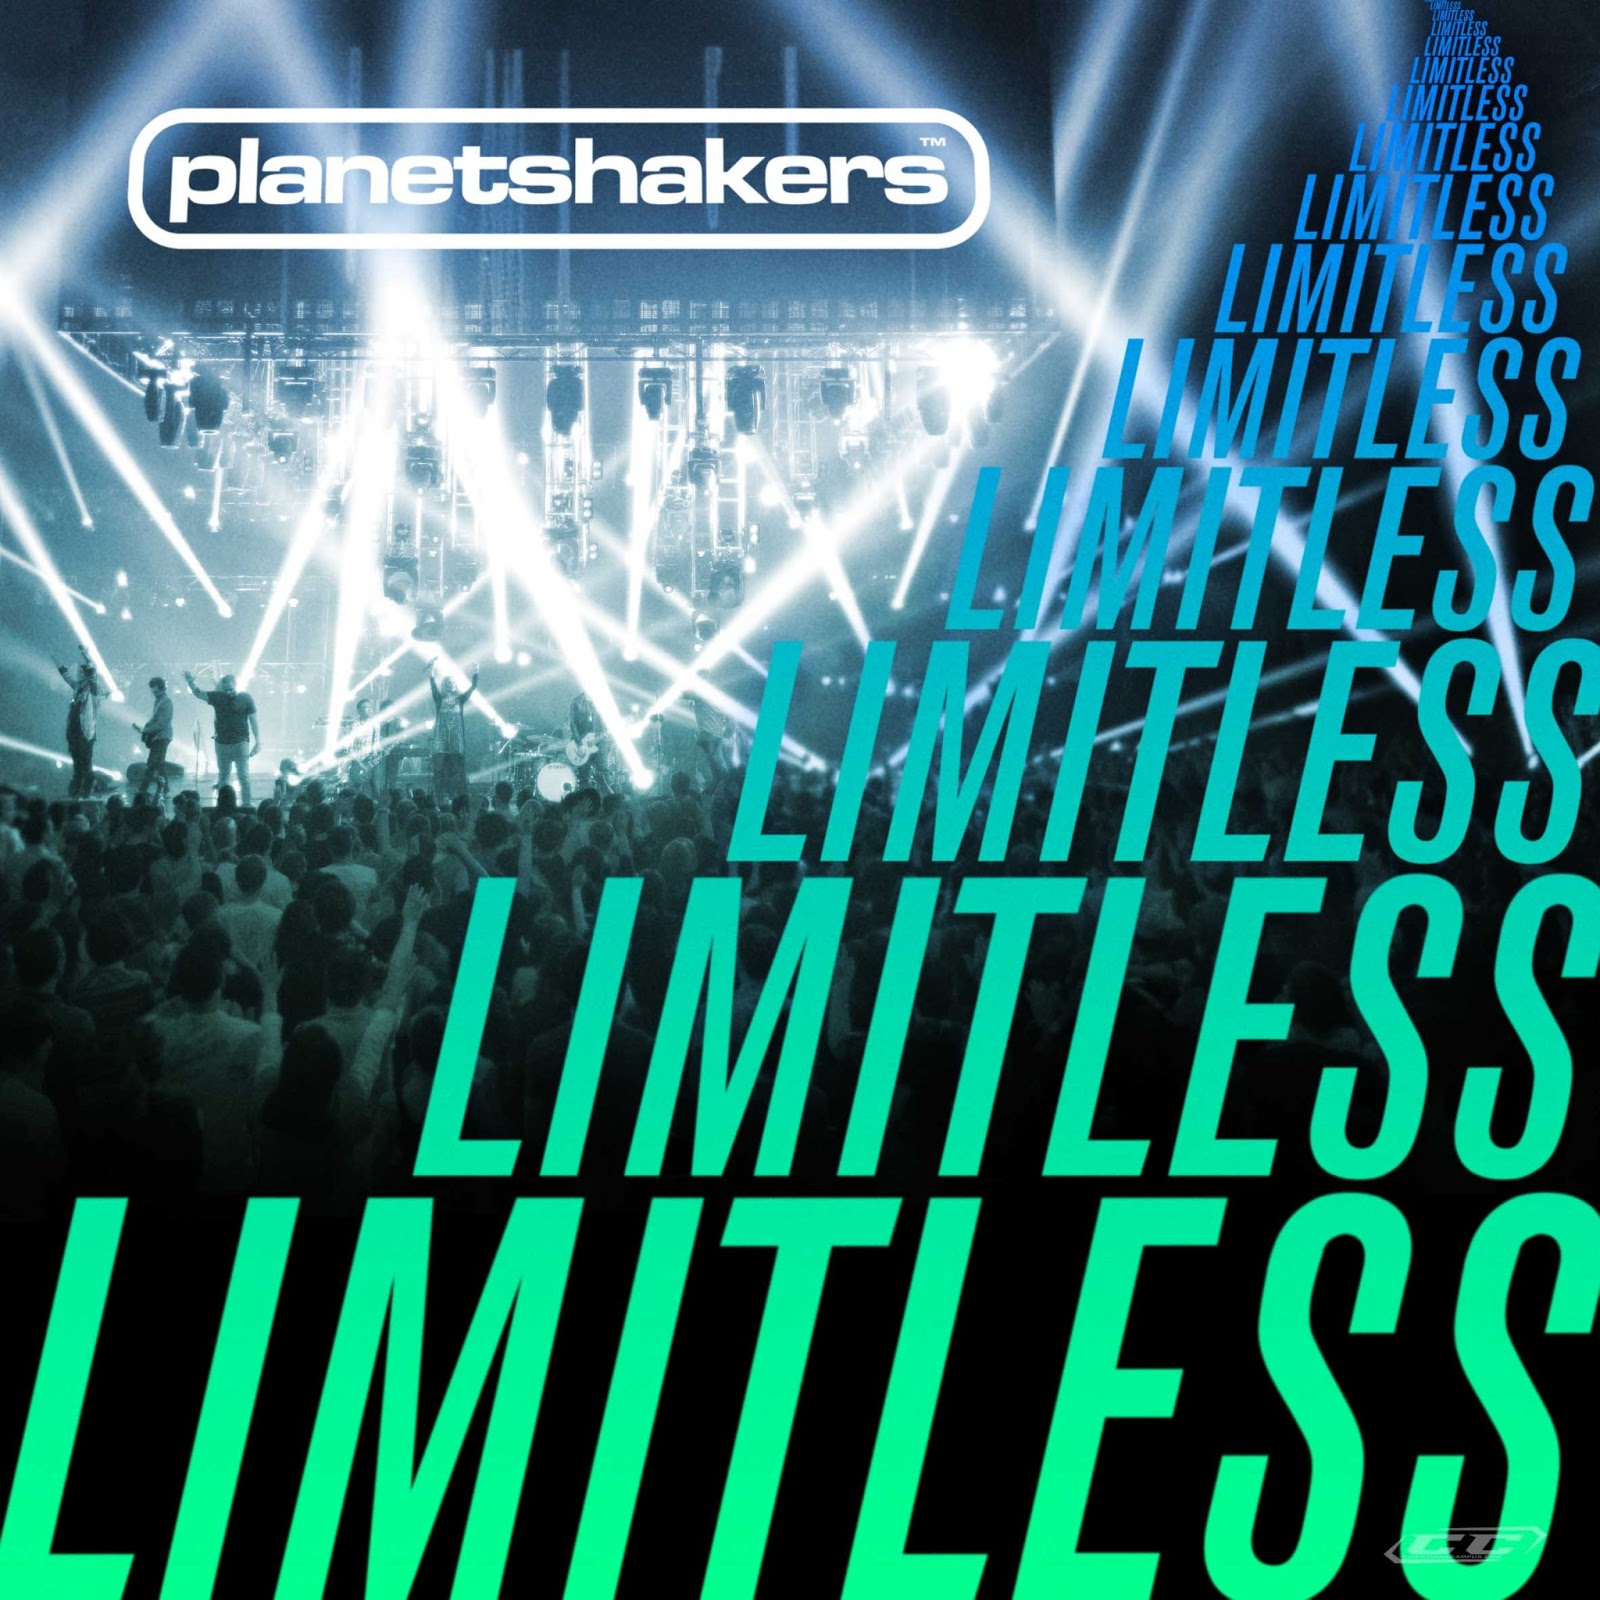 Planetshakers - Limitless 2013 English Christian Album Download